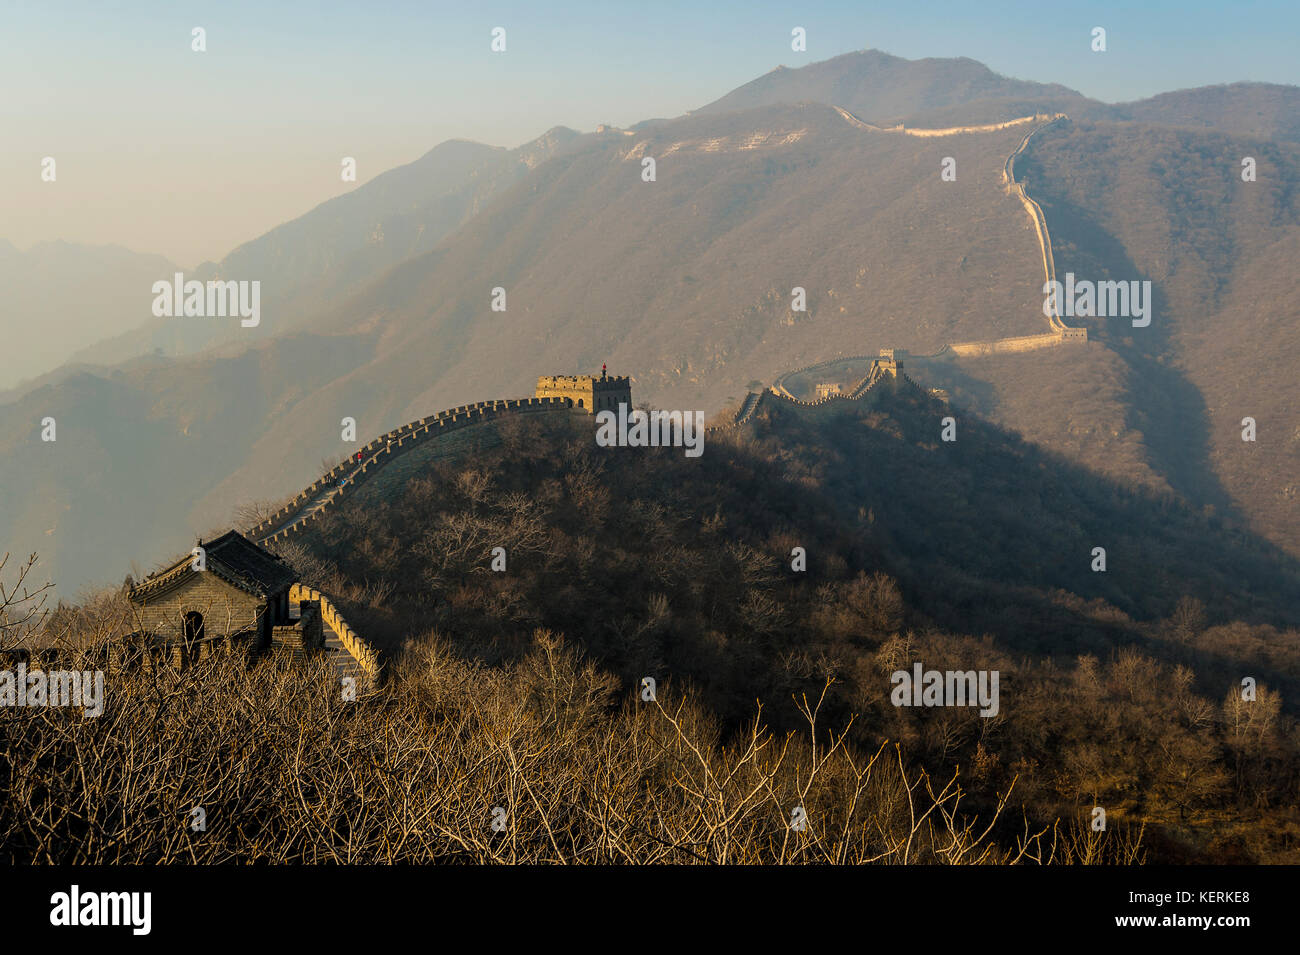 asia cina beijing travel Great Wall of Mutianyu landscape Stock Photo